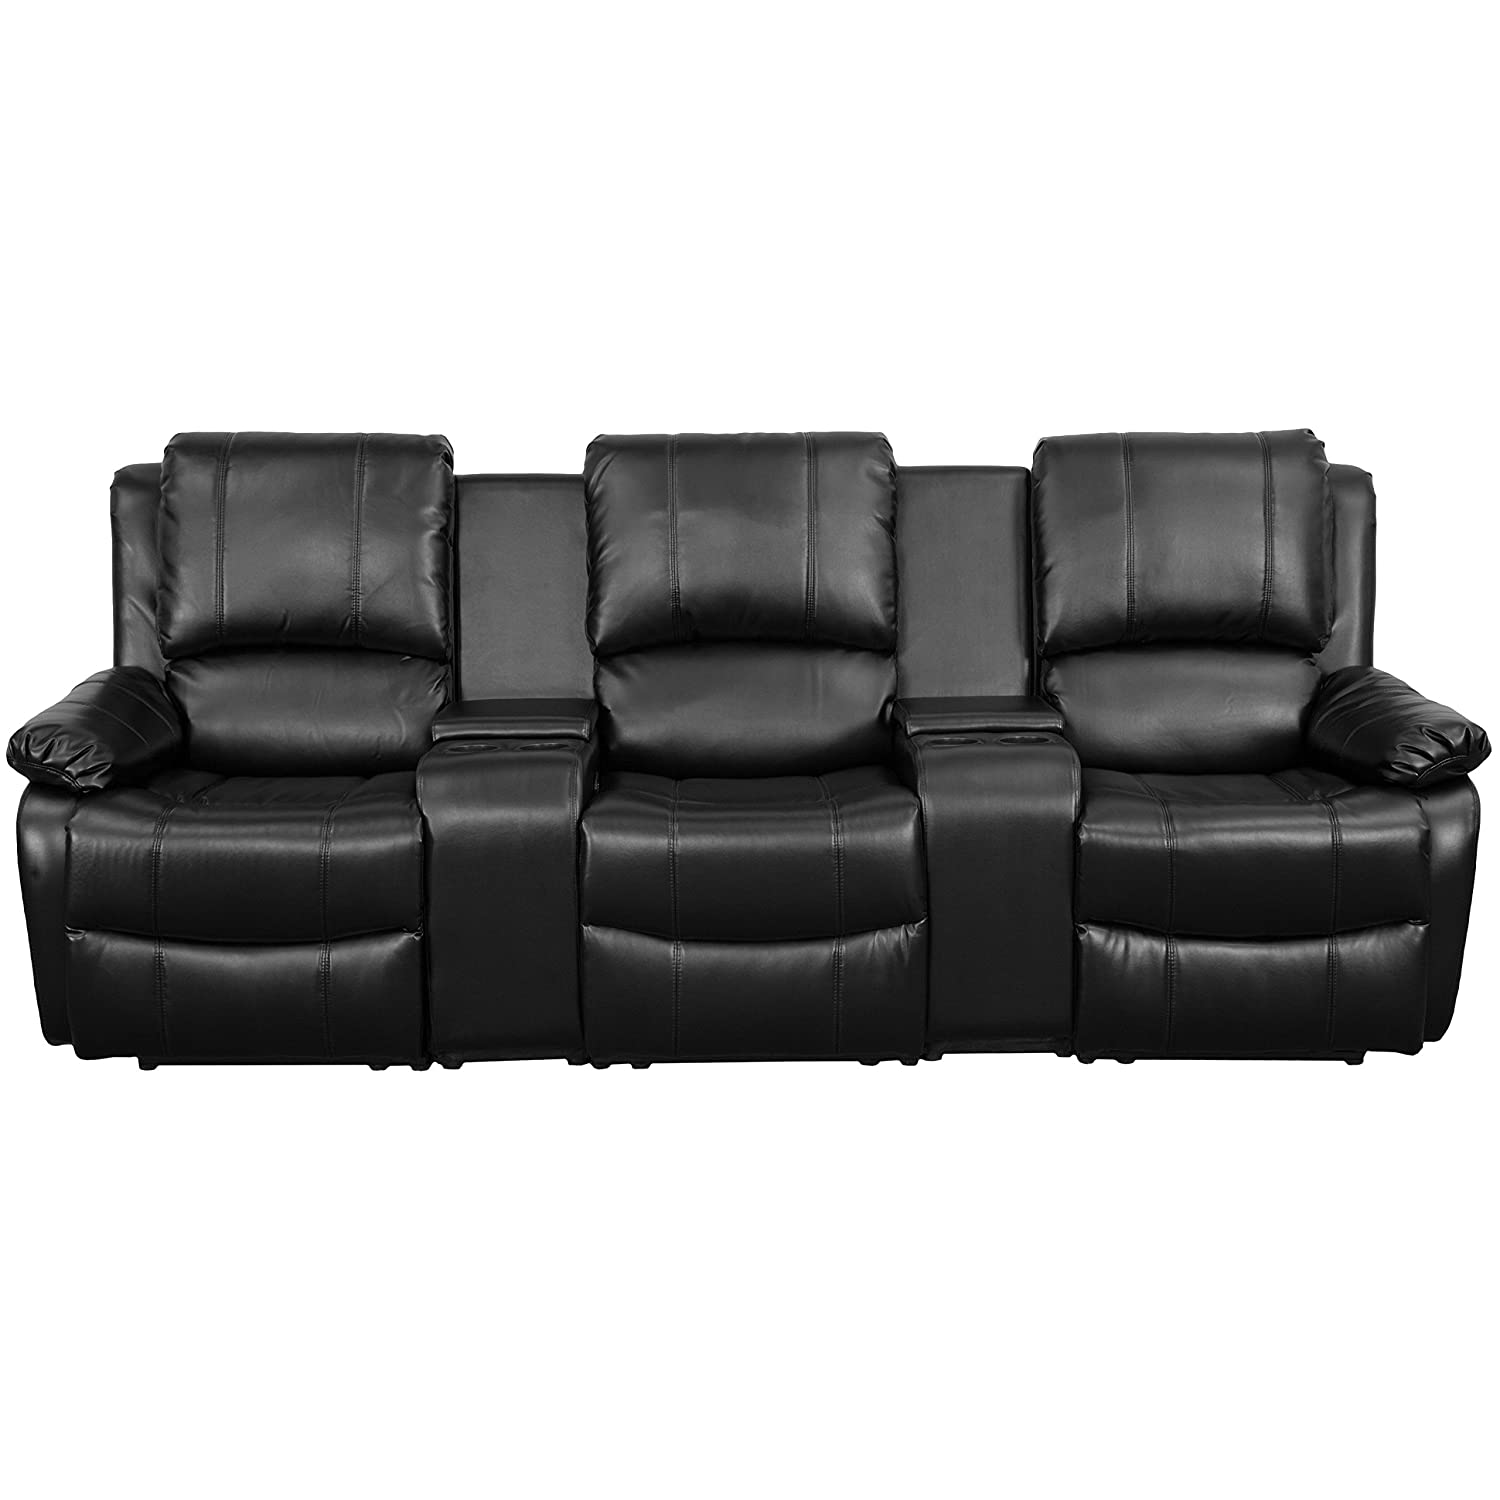 Amazon.com: Flash Furniture Allure Series 3 Seat Reclining Pillow Back  Black Leather Theater Seating Unit With Cup Holders: Kitchen U0026 Dining